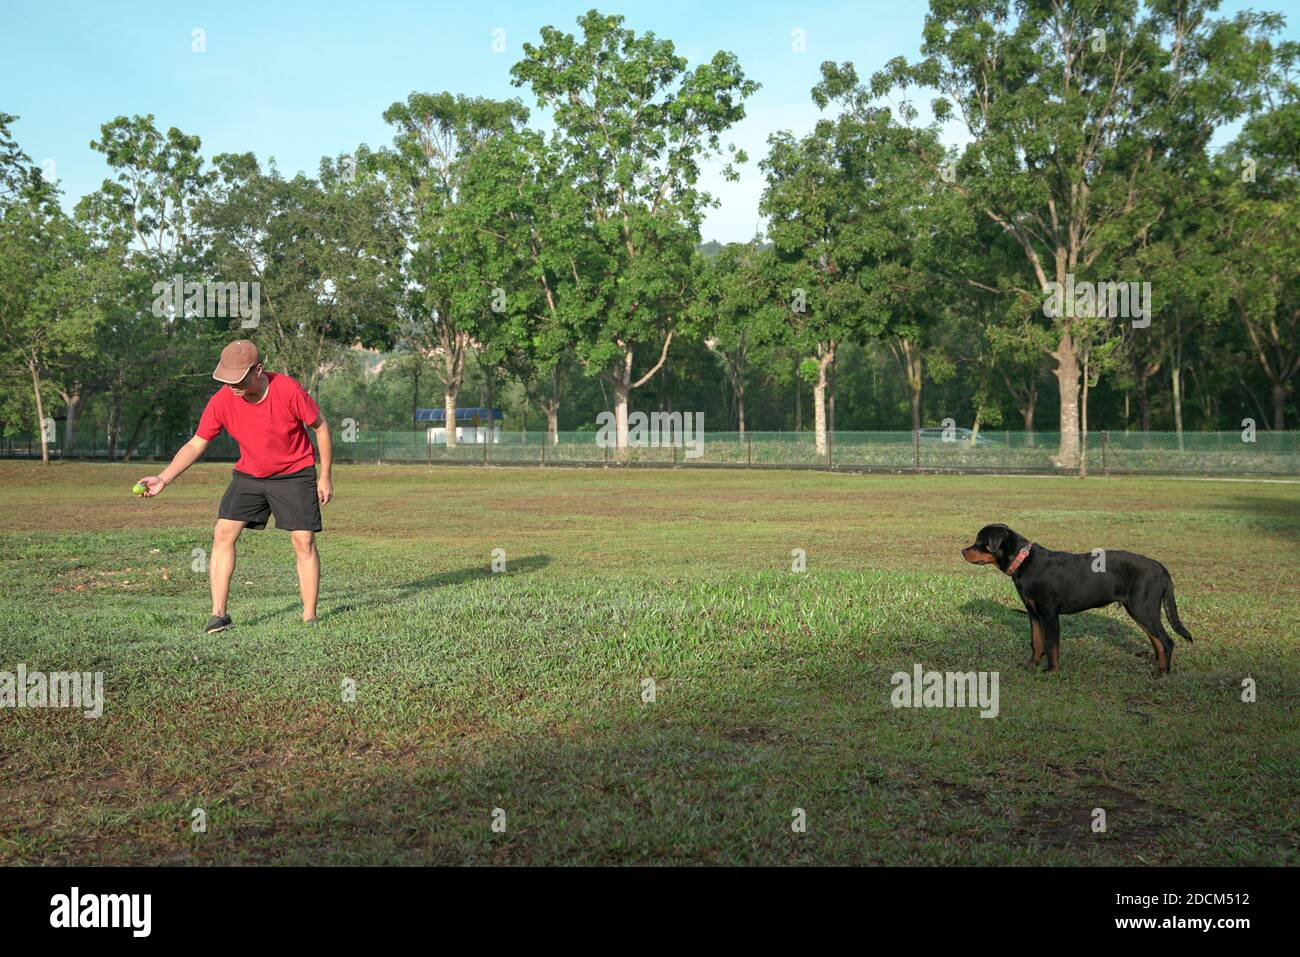 Man Holding A Toy Doing Training With His Rottweiler Puppy On The Field Stock Photo Alamy